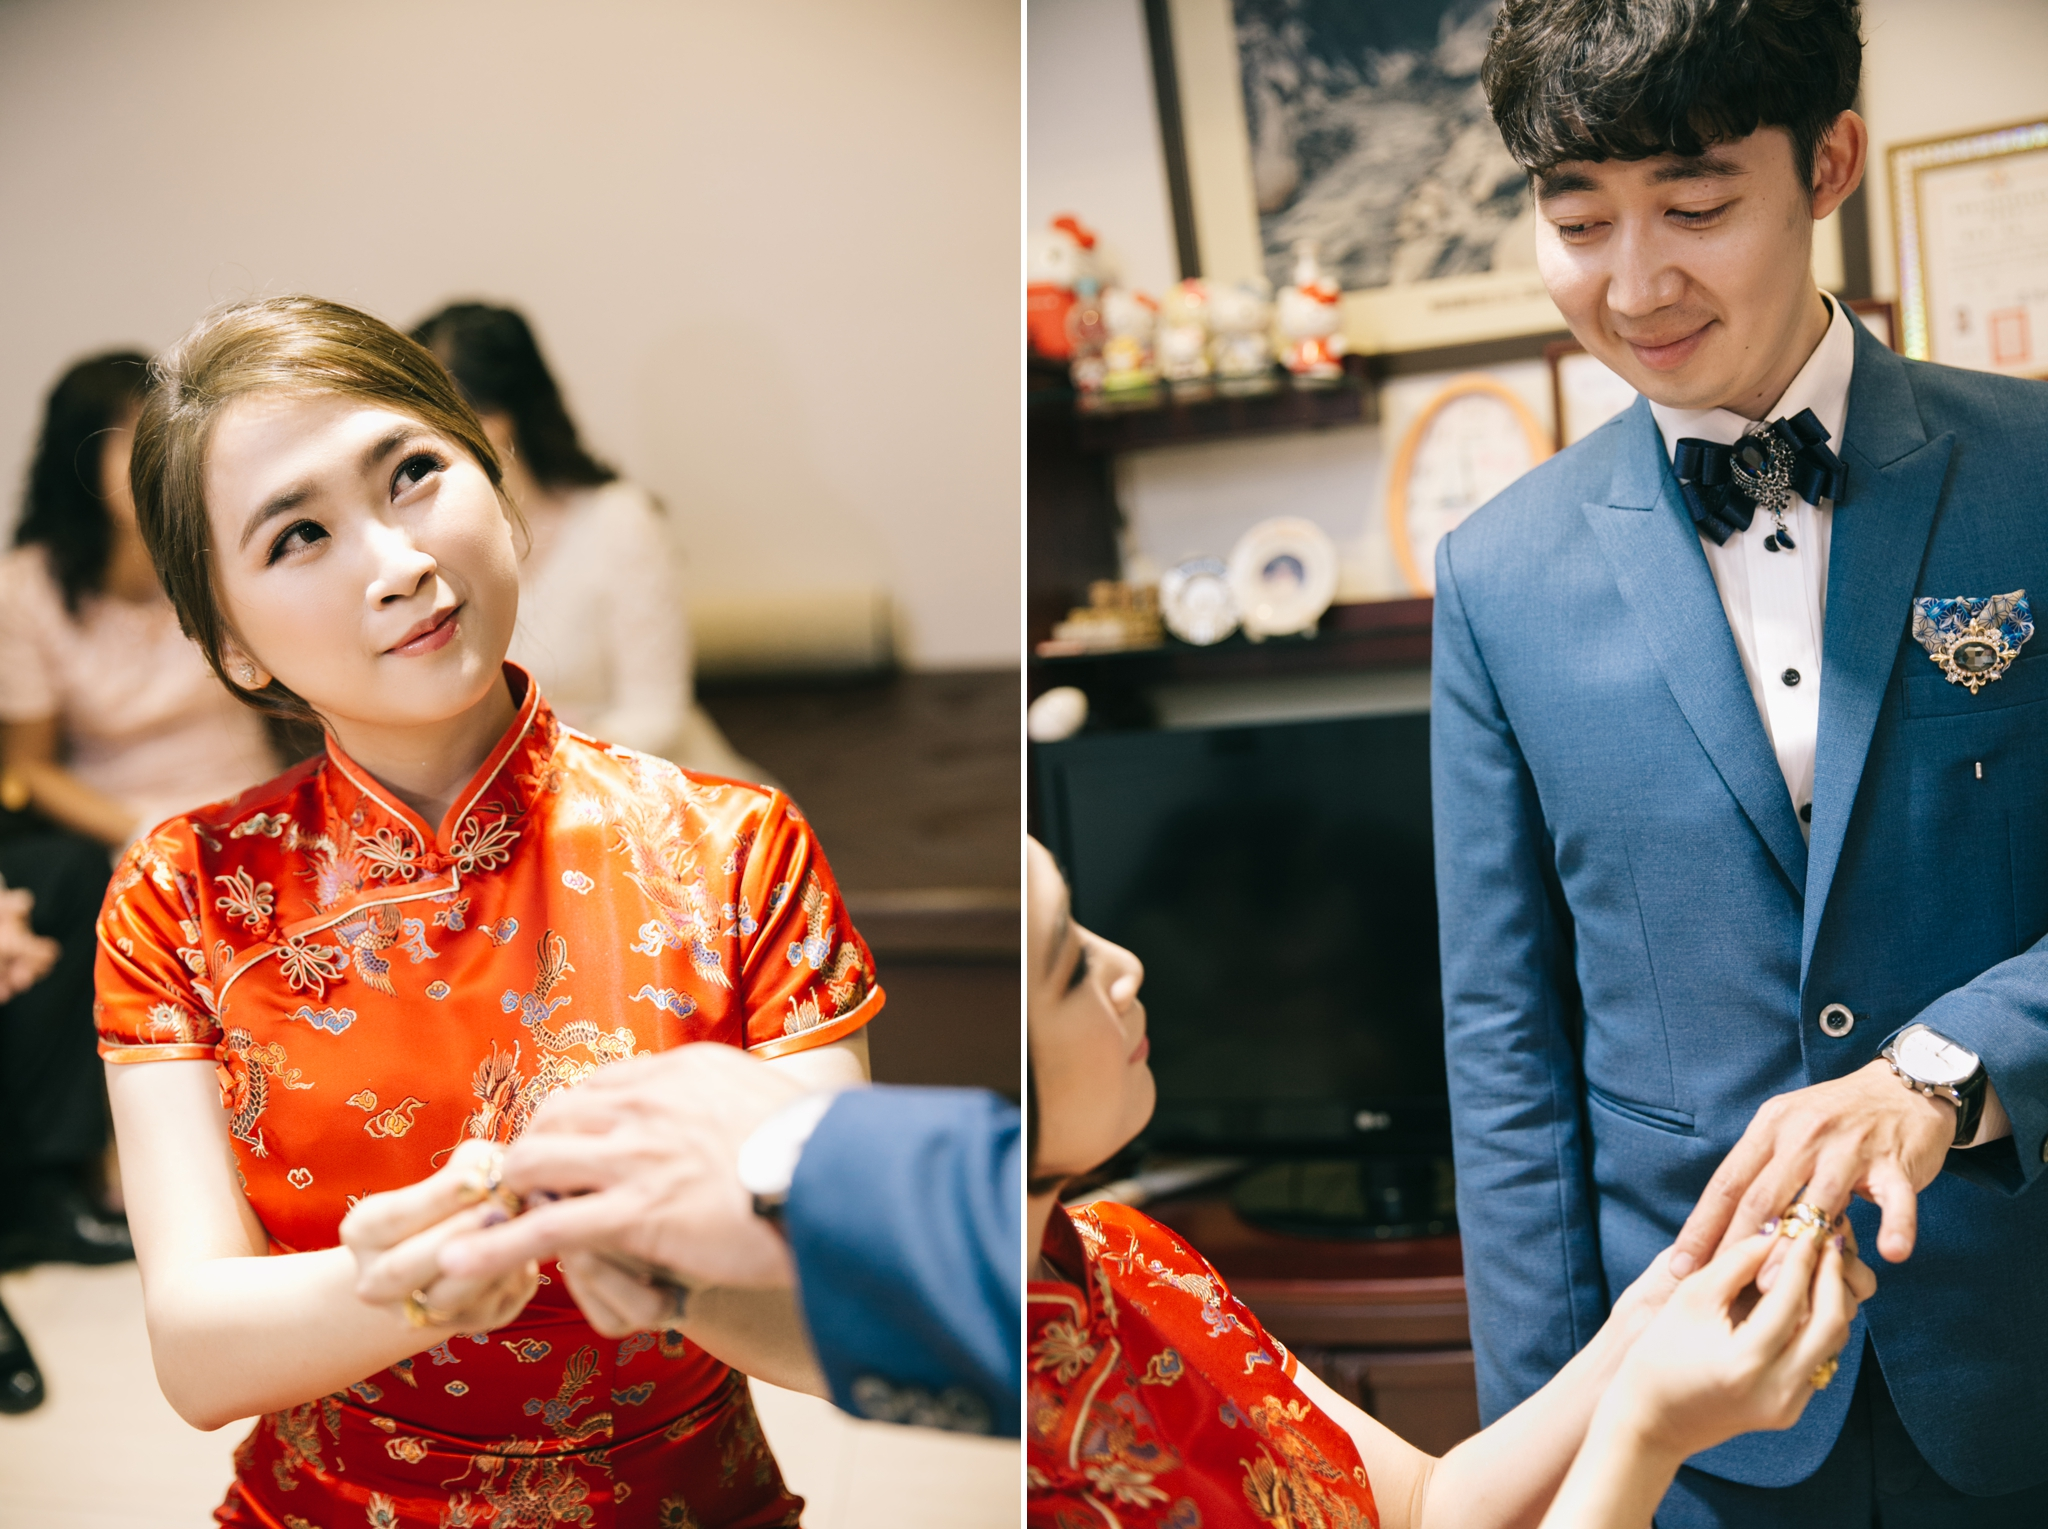 Keddy+Richard-wedding-新莊頤品飯店-038.jpg